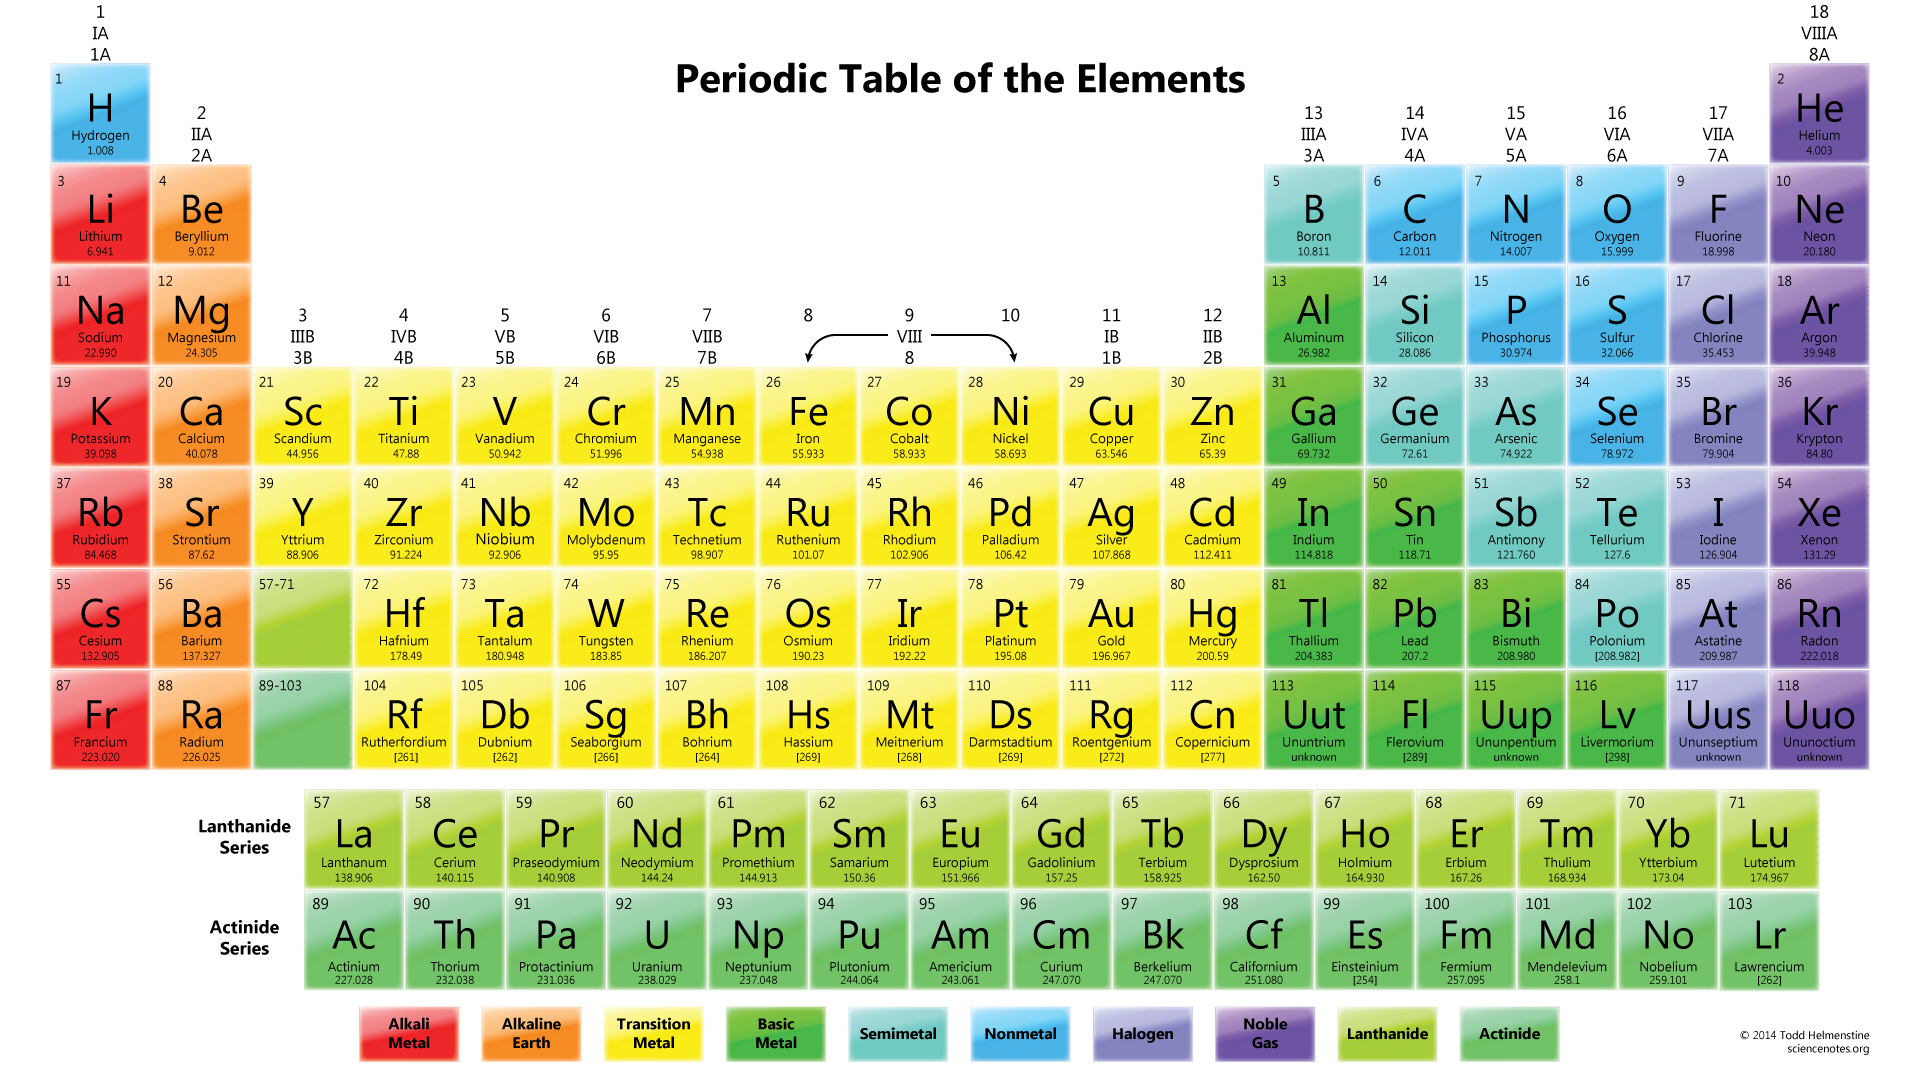 Periodic table image hd choice image periodic table images periodic table of elements 2017 hd brokeasshome hd periodic table of elements gallery images gamestrikefo choice gamestrikefo Images